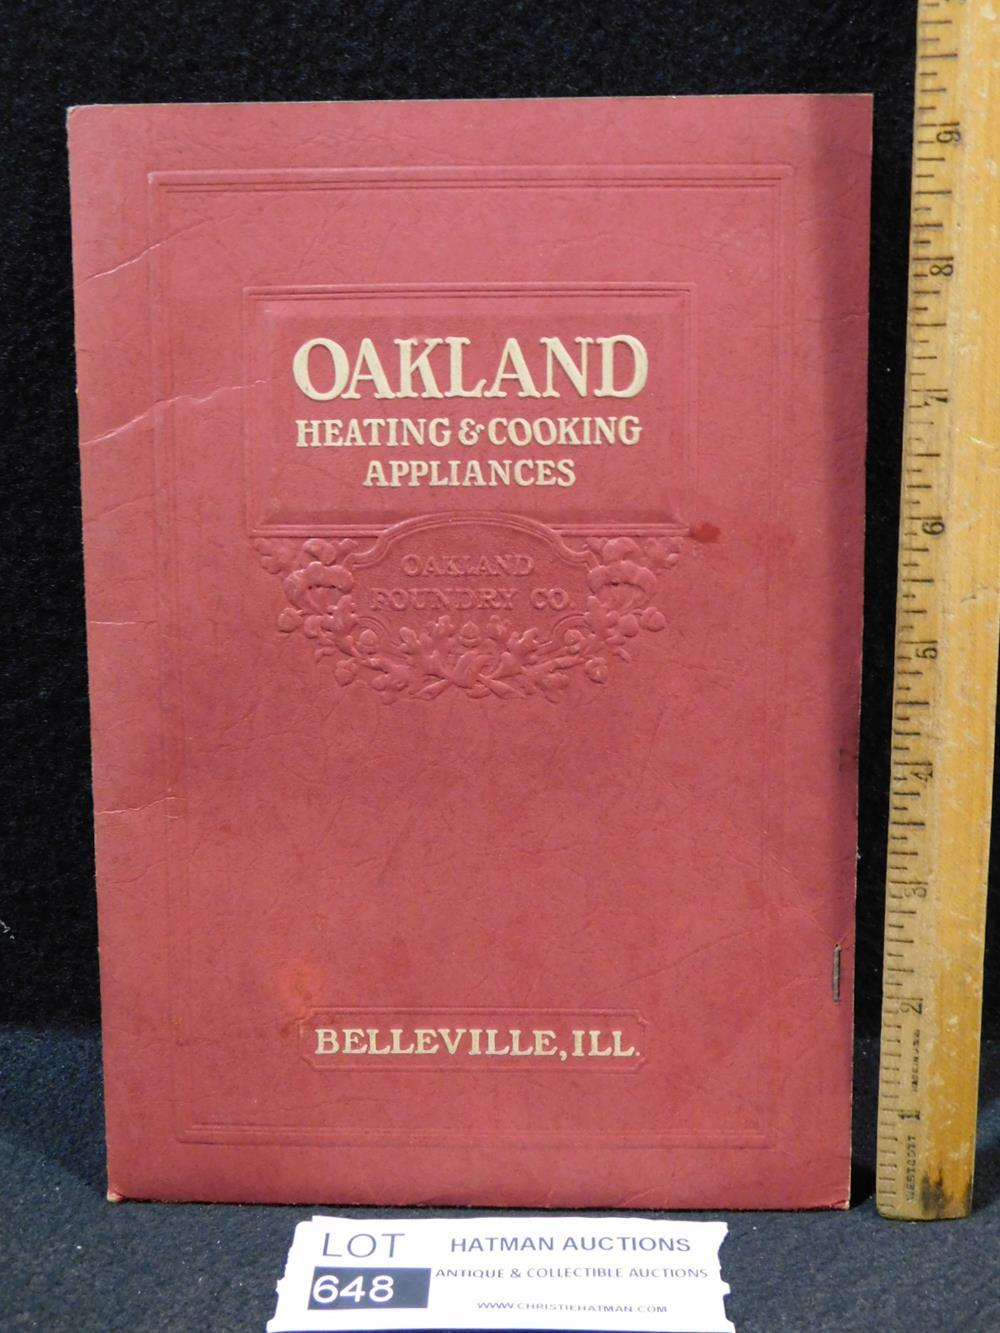 VINTAGE CATALOG OAKLAND HEATING AND COOKING APPLIANCES BOOK ANTIQUES AND COLLECTIBLES